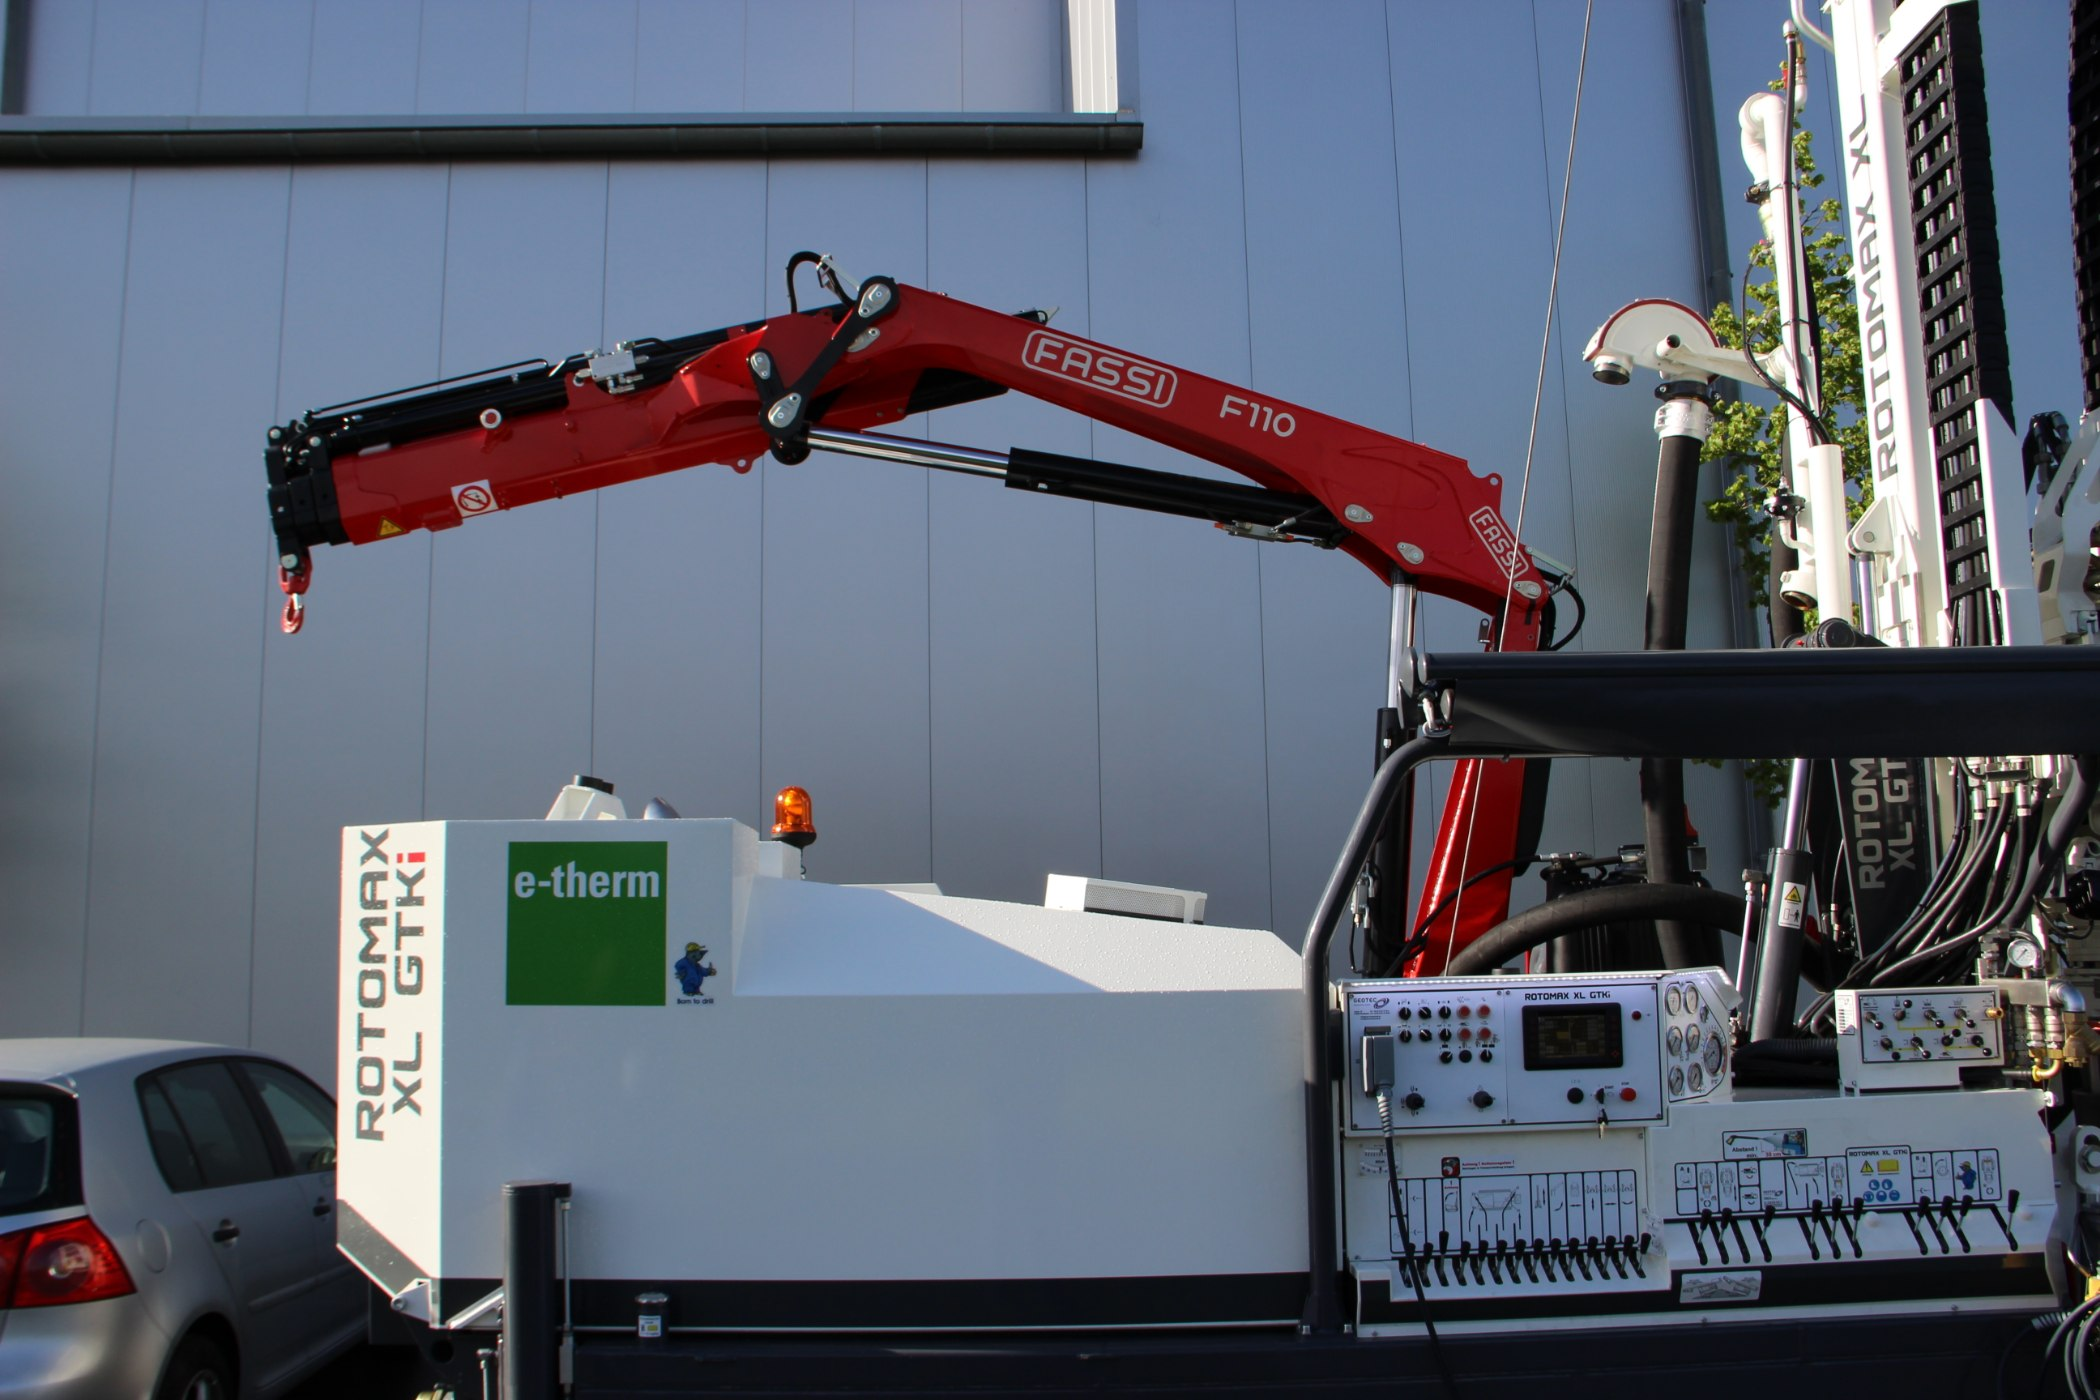 Geotec_Bohrtechnik_Drilling_Geothermiebohrung_Hammerbohrungen_Geothermal-drilling-application_Hammer-drilling_Rotomax_XL_GTKi_01-IMG_4833